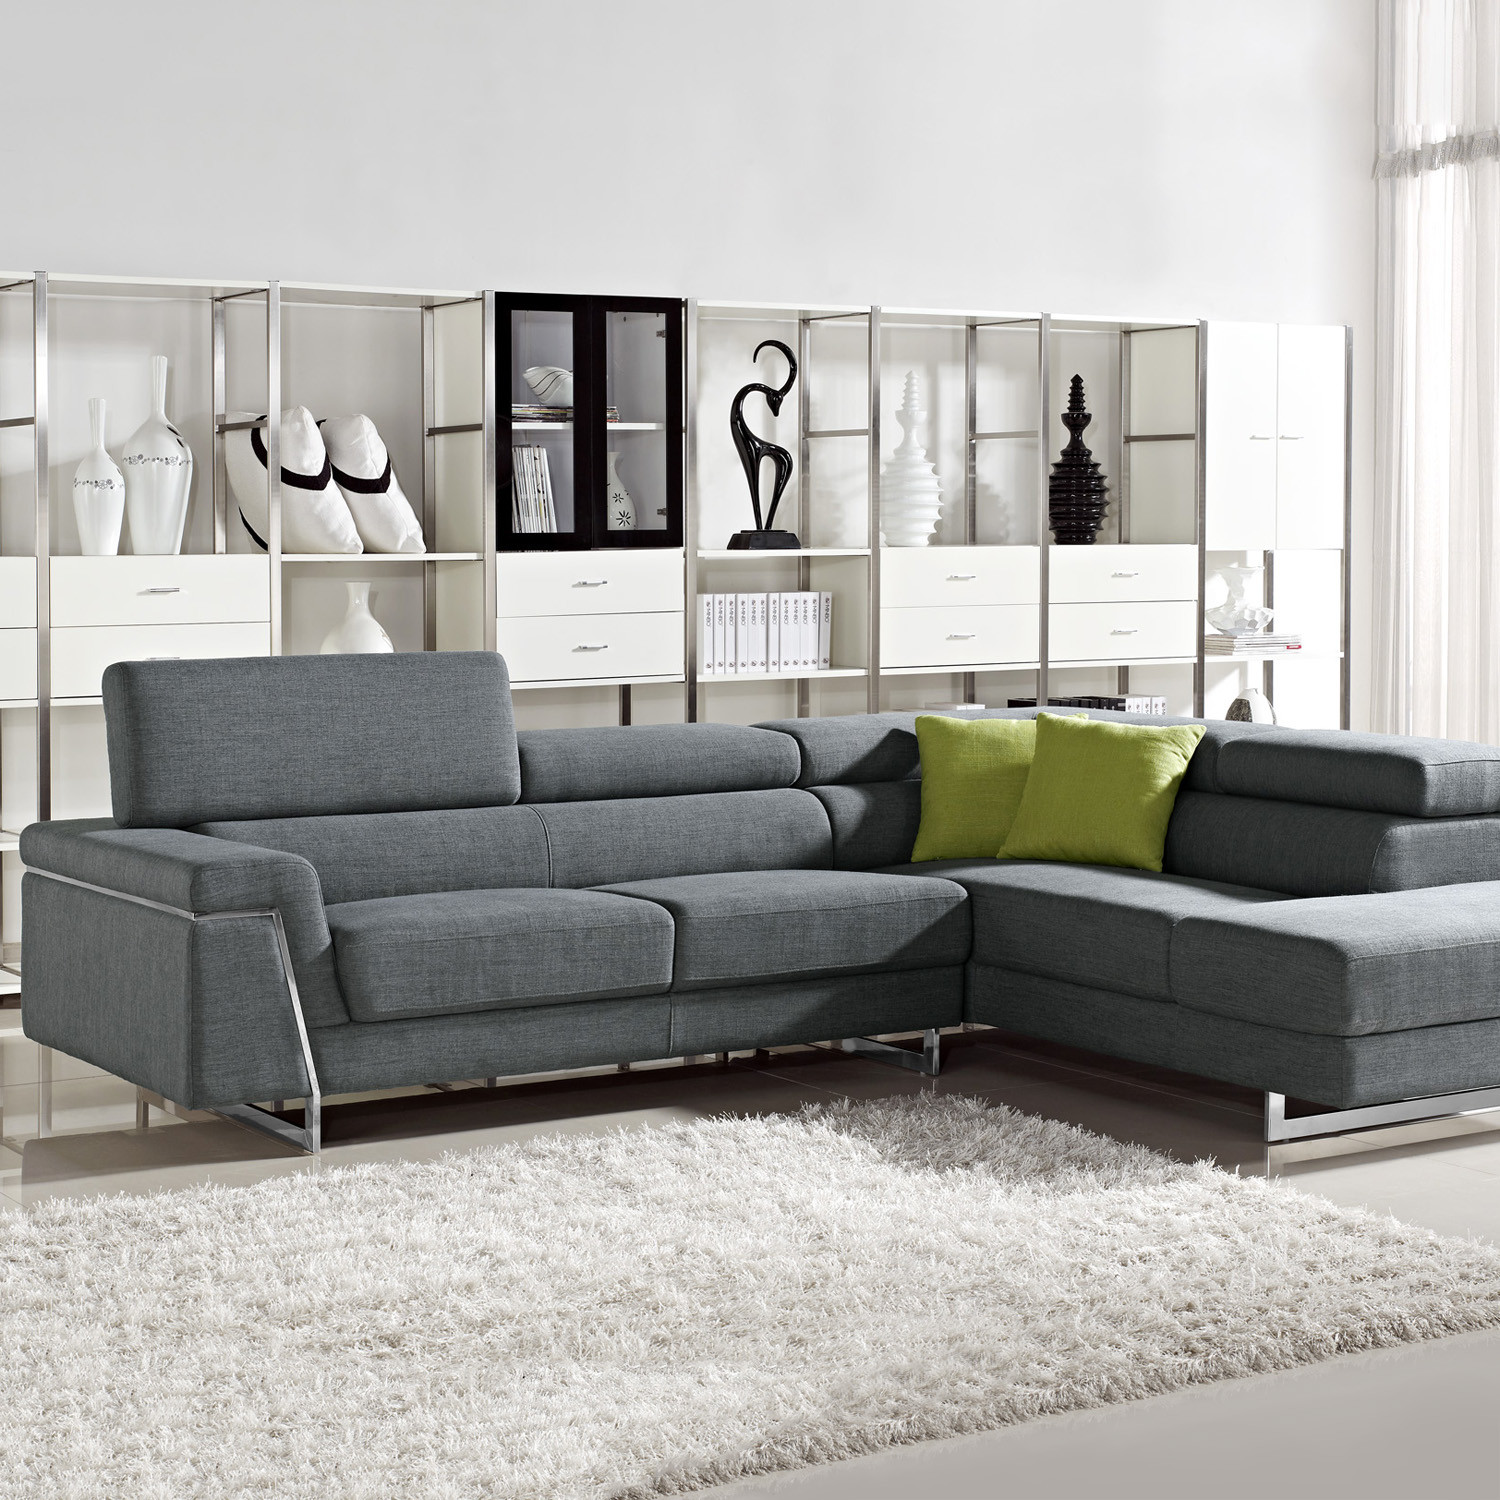 Divani Casa Darby Modern Fabric Sectional Sofa Set VIG Furniture